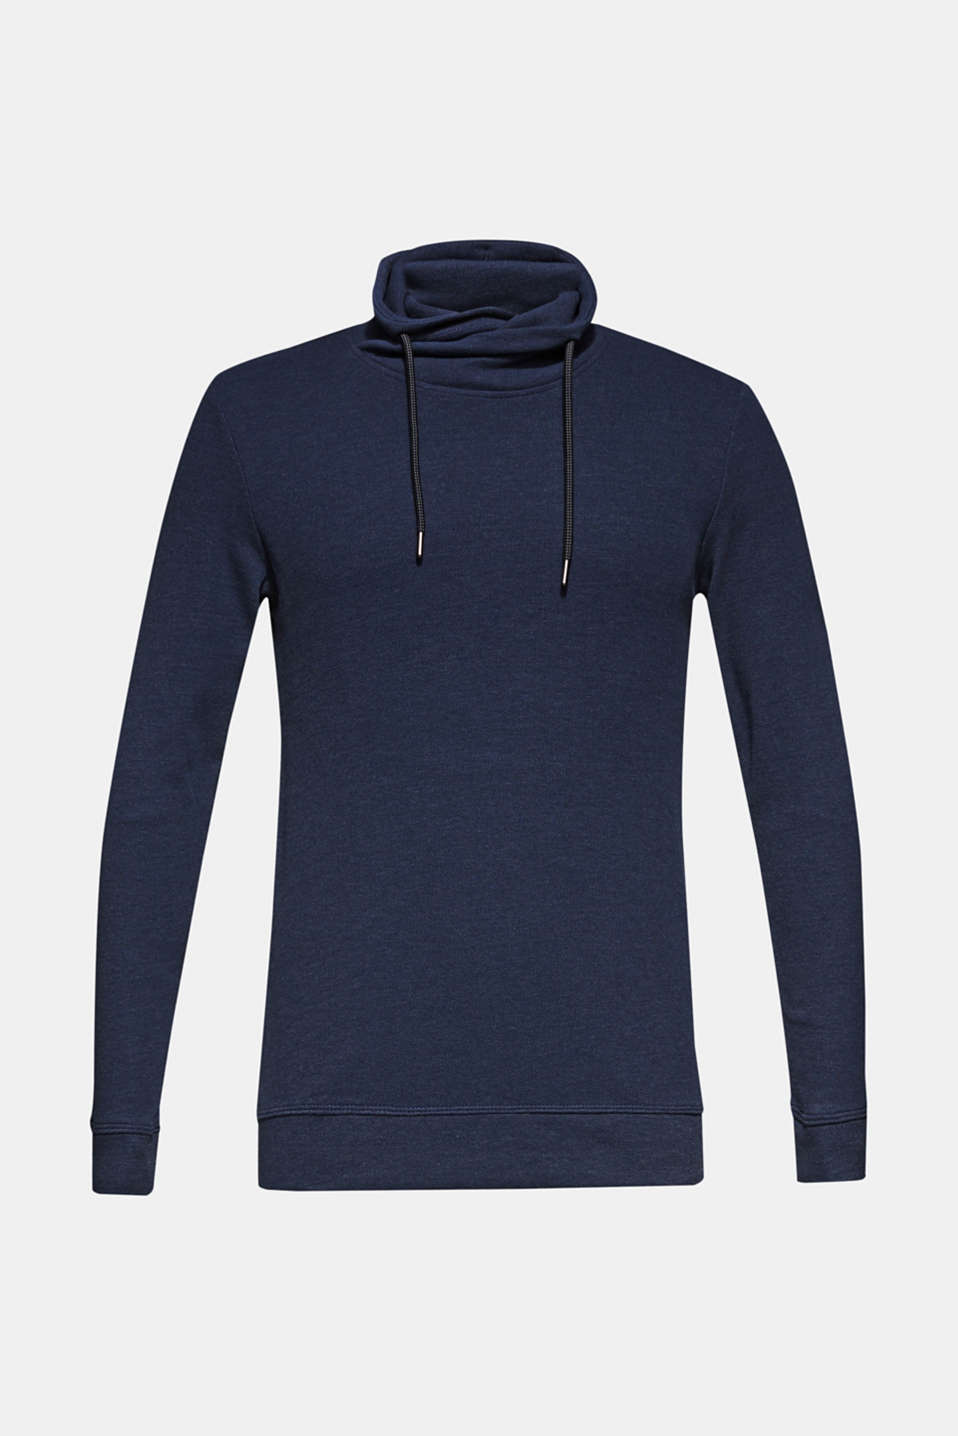 Piqué long sleeve top with a drawstring collar, NAVY, detail image number 5